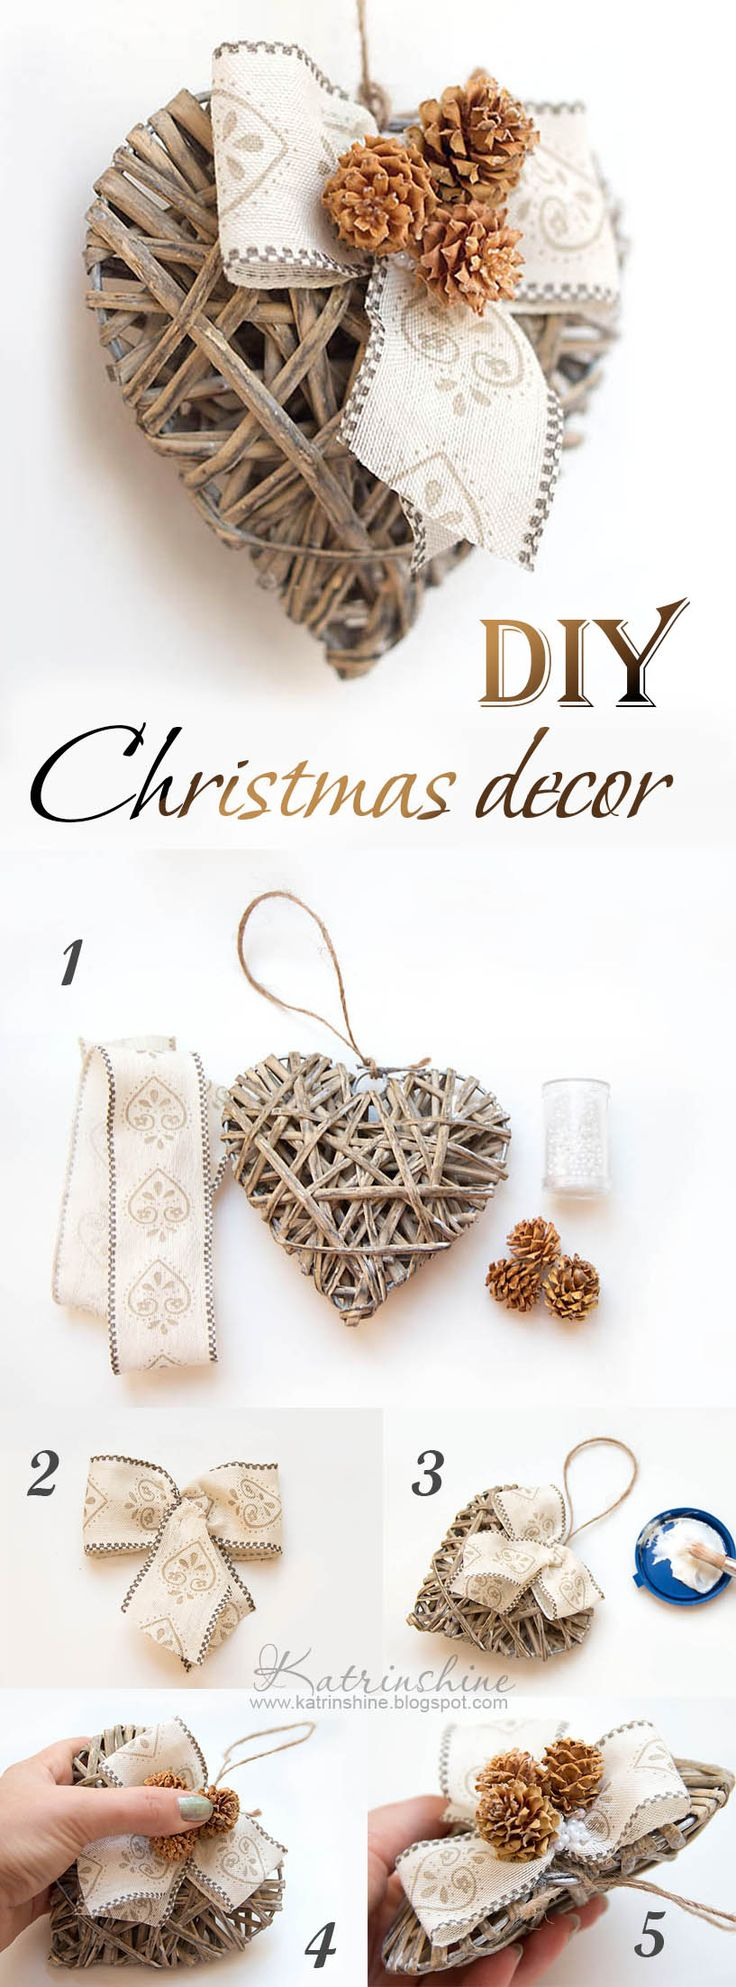 Christmas shabby chic heart DIY